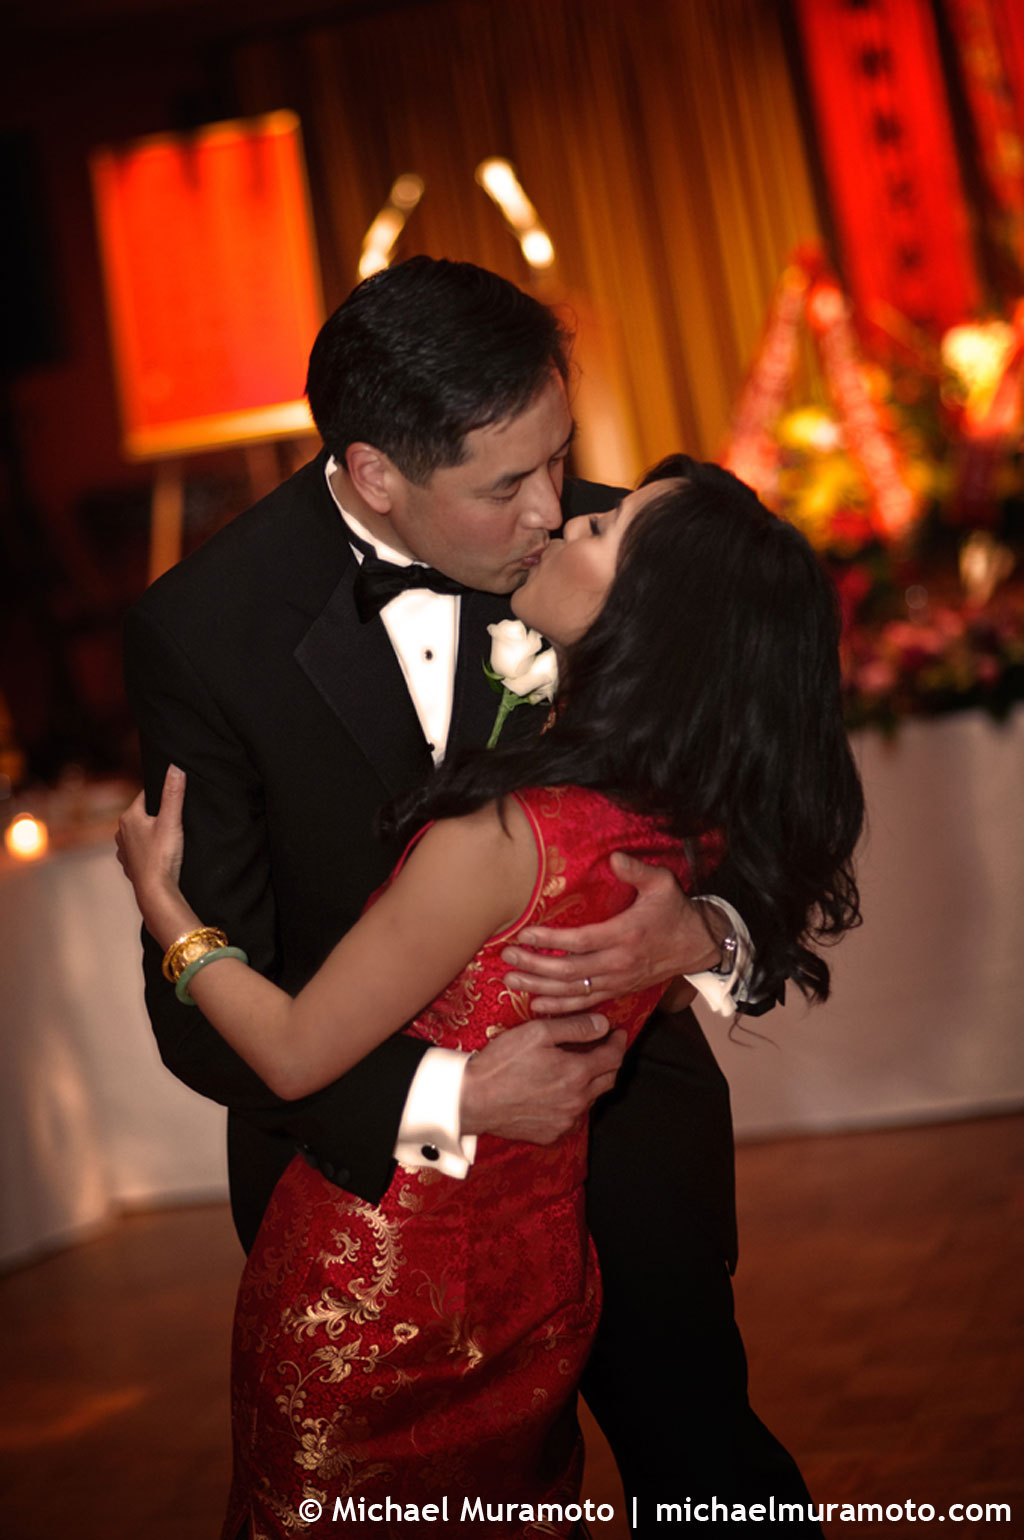 red, gold, Bride, Groom, First dance, San, Francisco, Michael muramoto photography